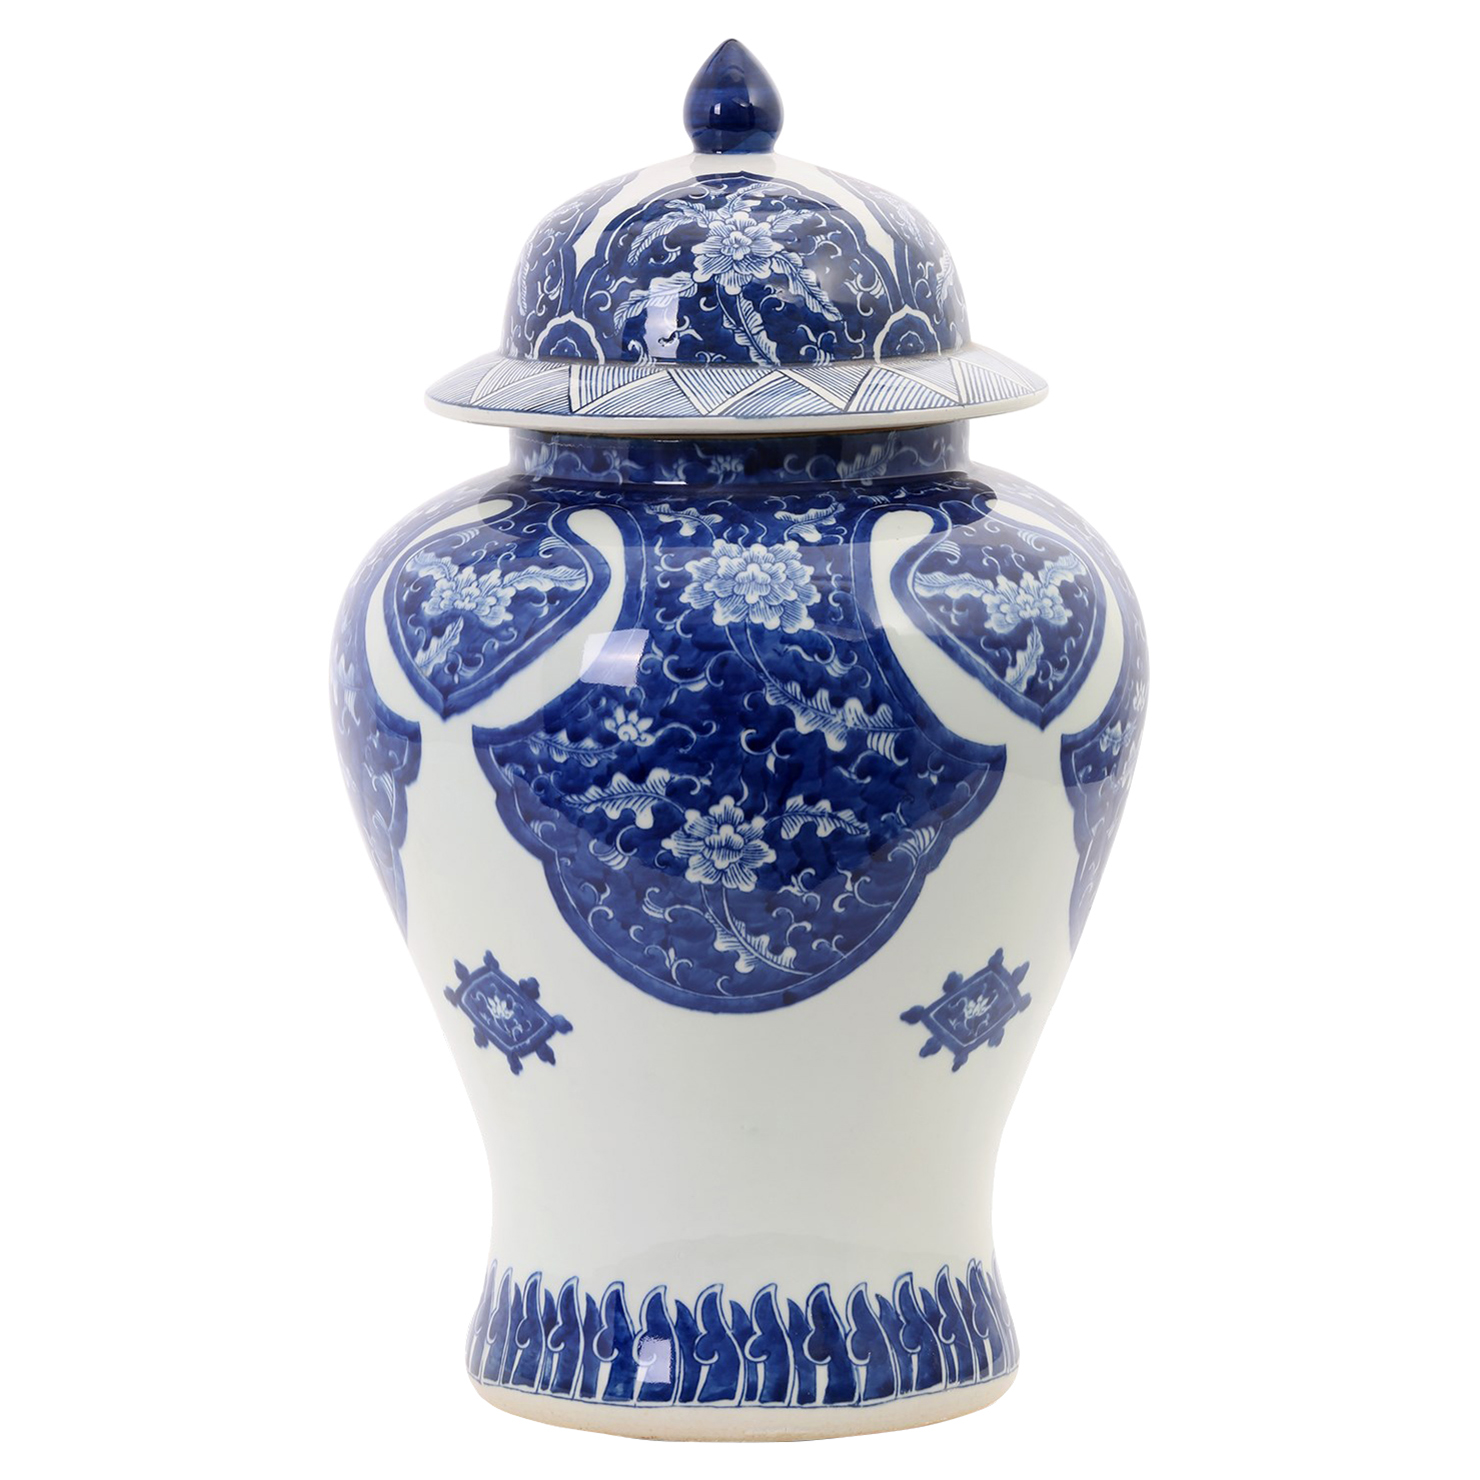 Genghis Global Blue Foliage Hand Painted Porcelain Temple Jar